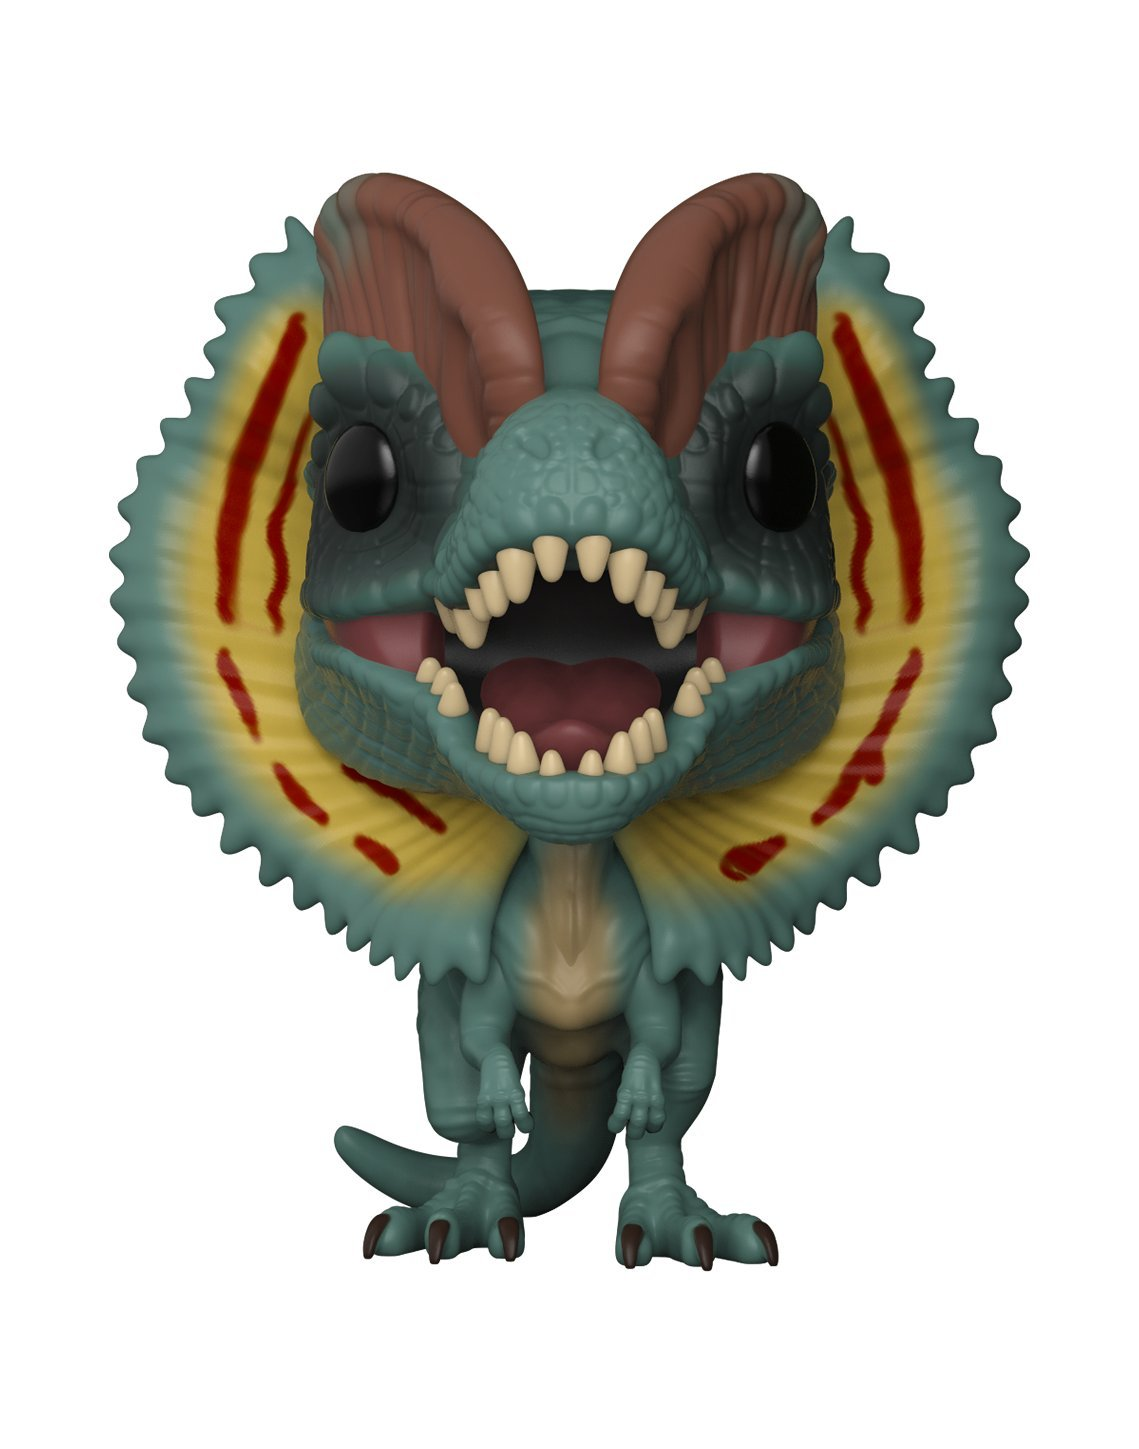 Jurassic Park 26736 Dilophosaurus Pop Vinyl Figure - Assorted Funko Pop! Movies: Accessory Toys & Games Plush Toys & Animals